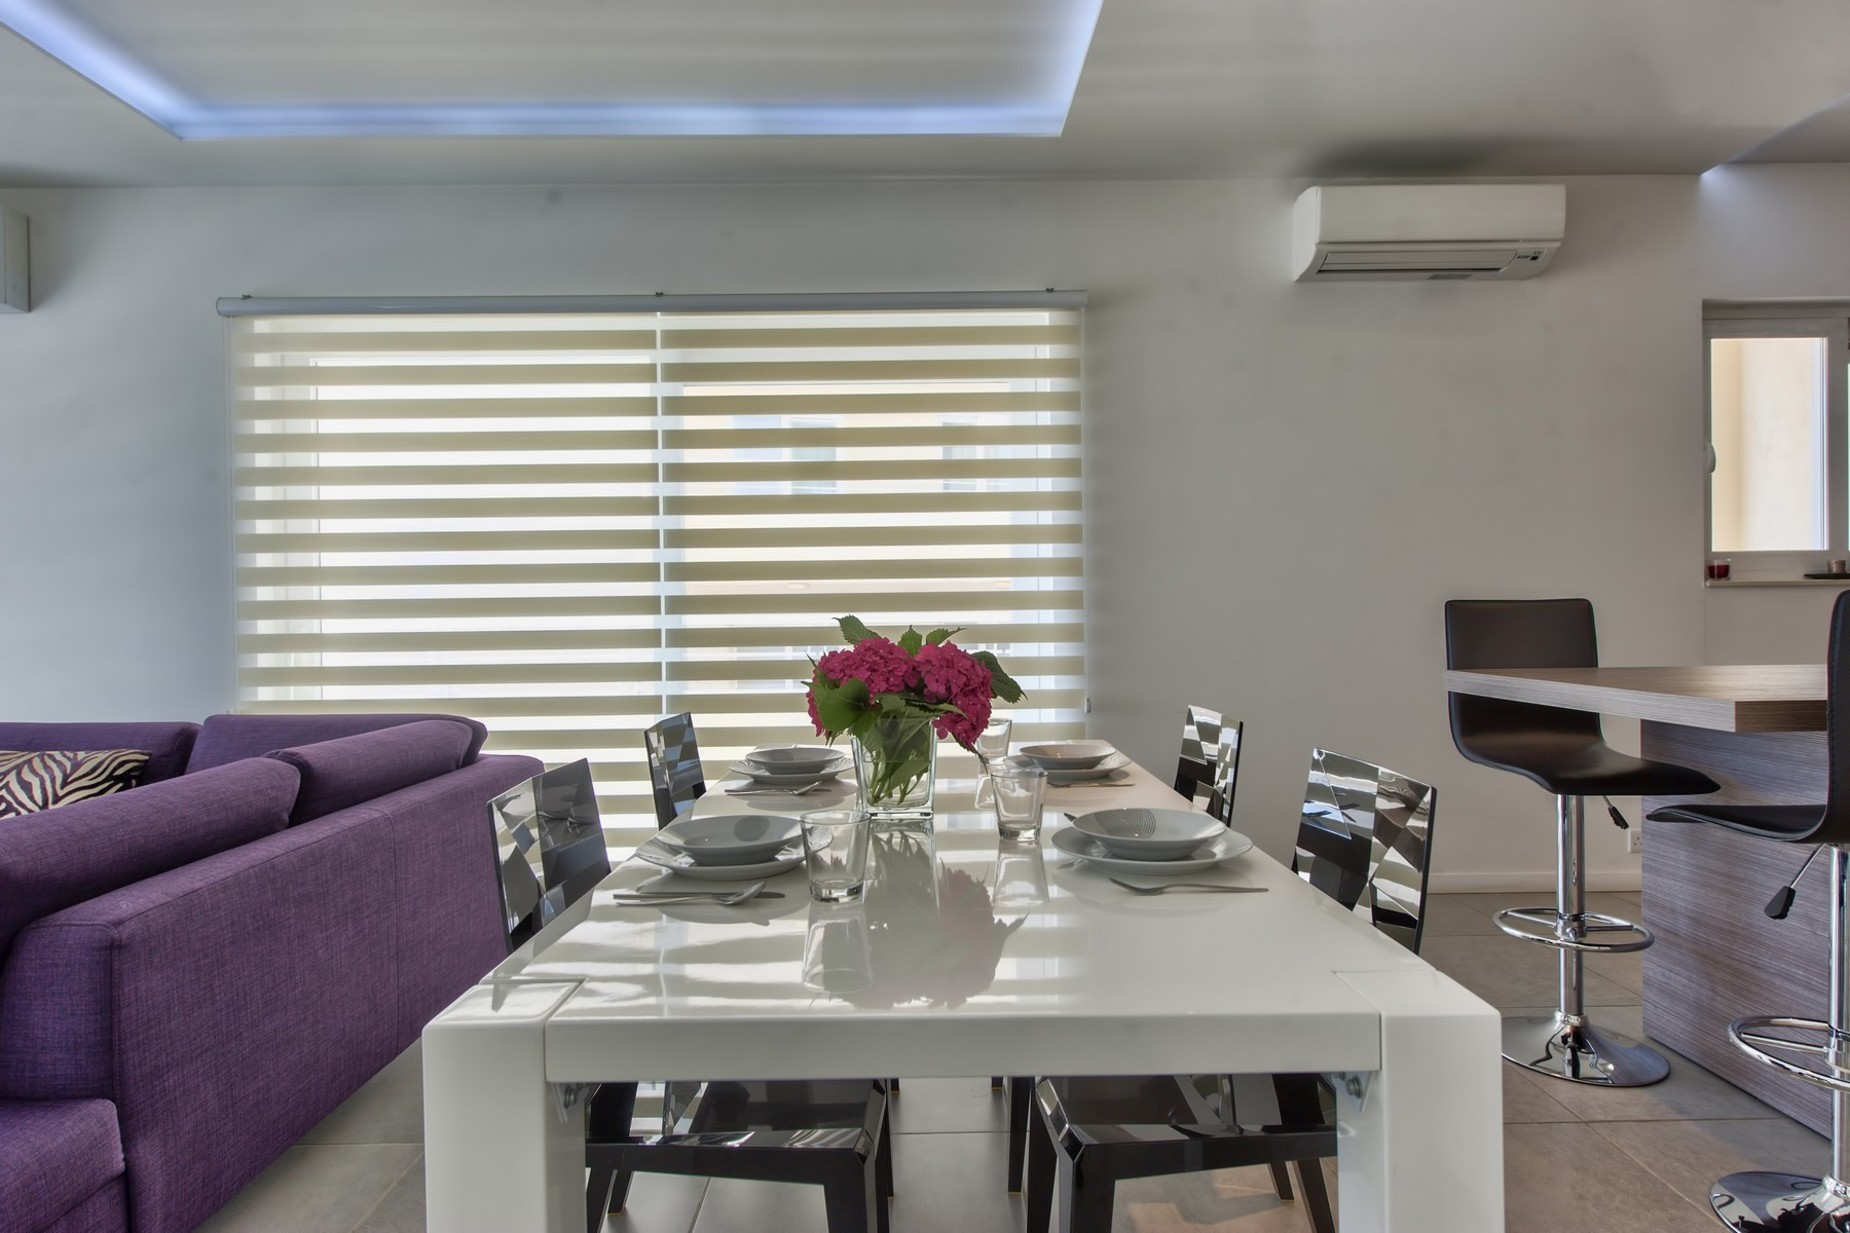 4 bed Apartment For Sale in Sliema, Sliema - thumb 10